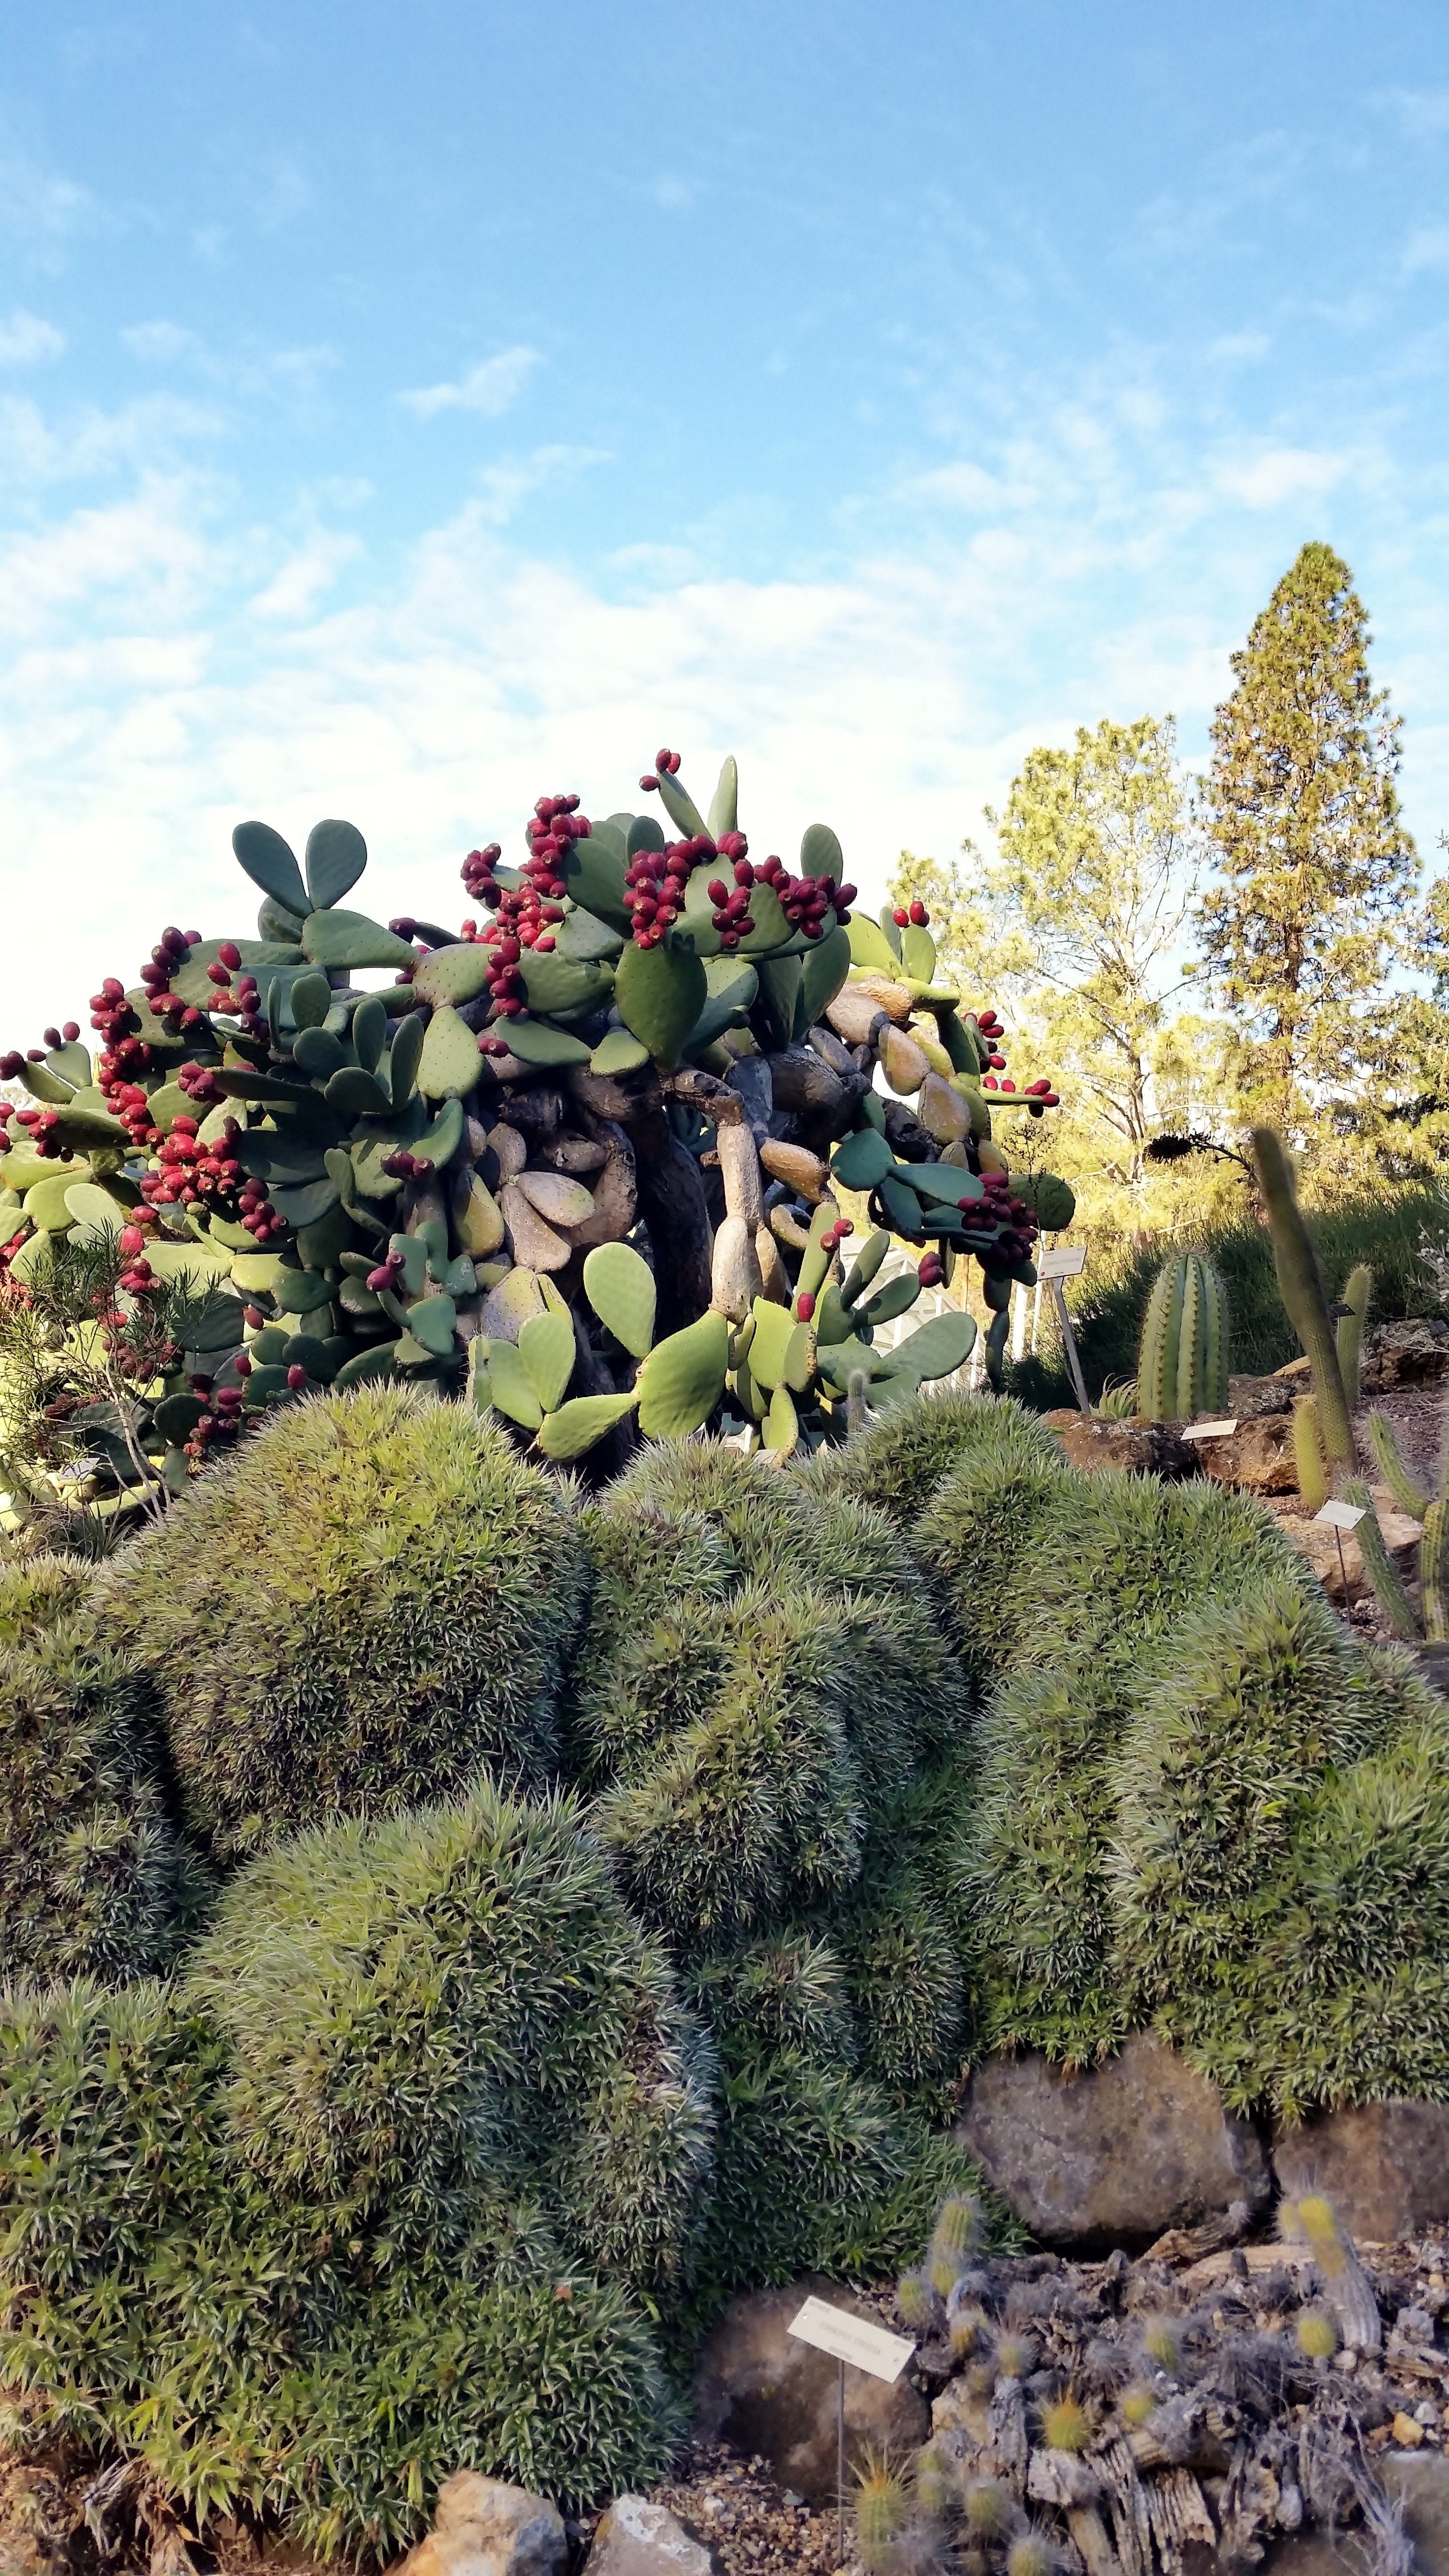 The Cactus Apples Looks So Beautiful And I Loved The Bromeliad  Deuterocohnia Brevifolia.